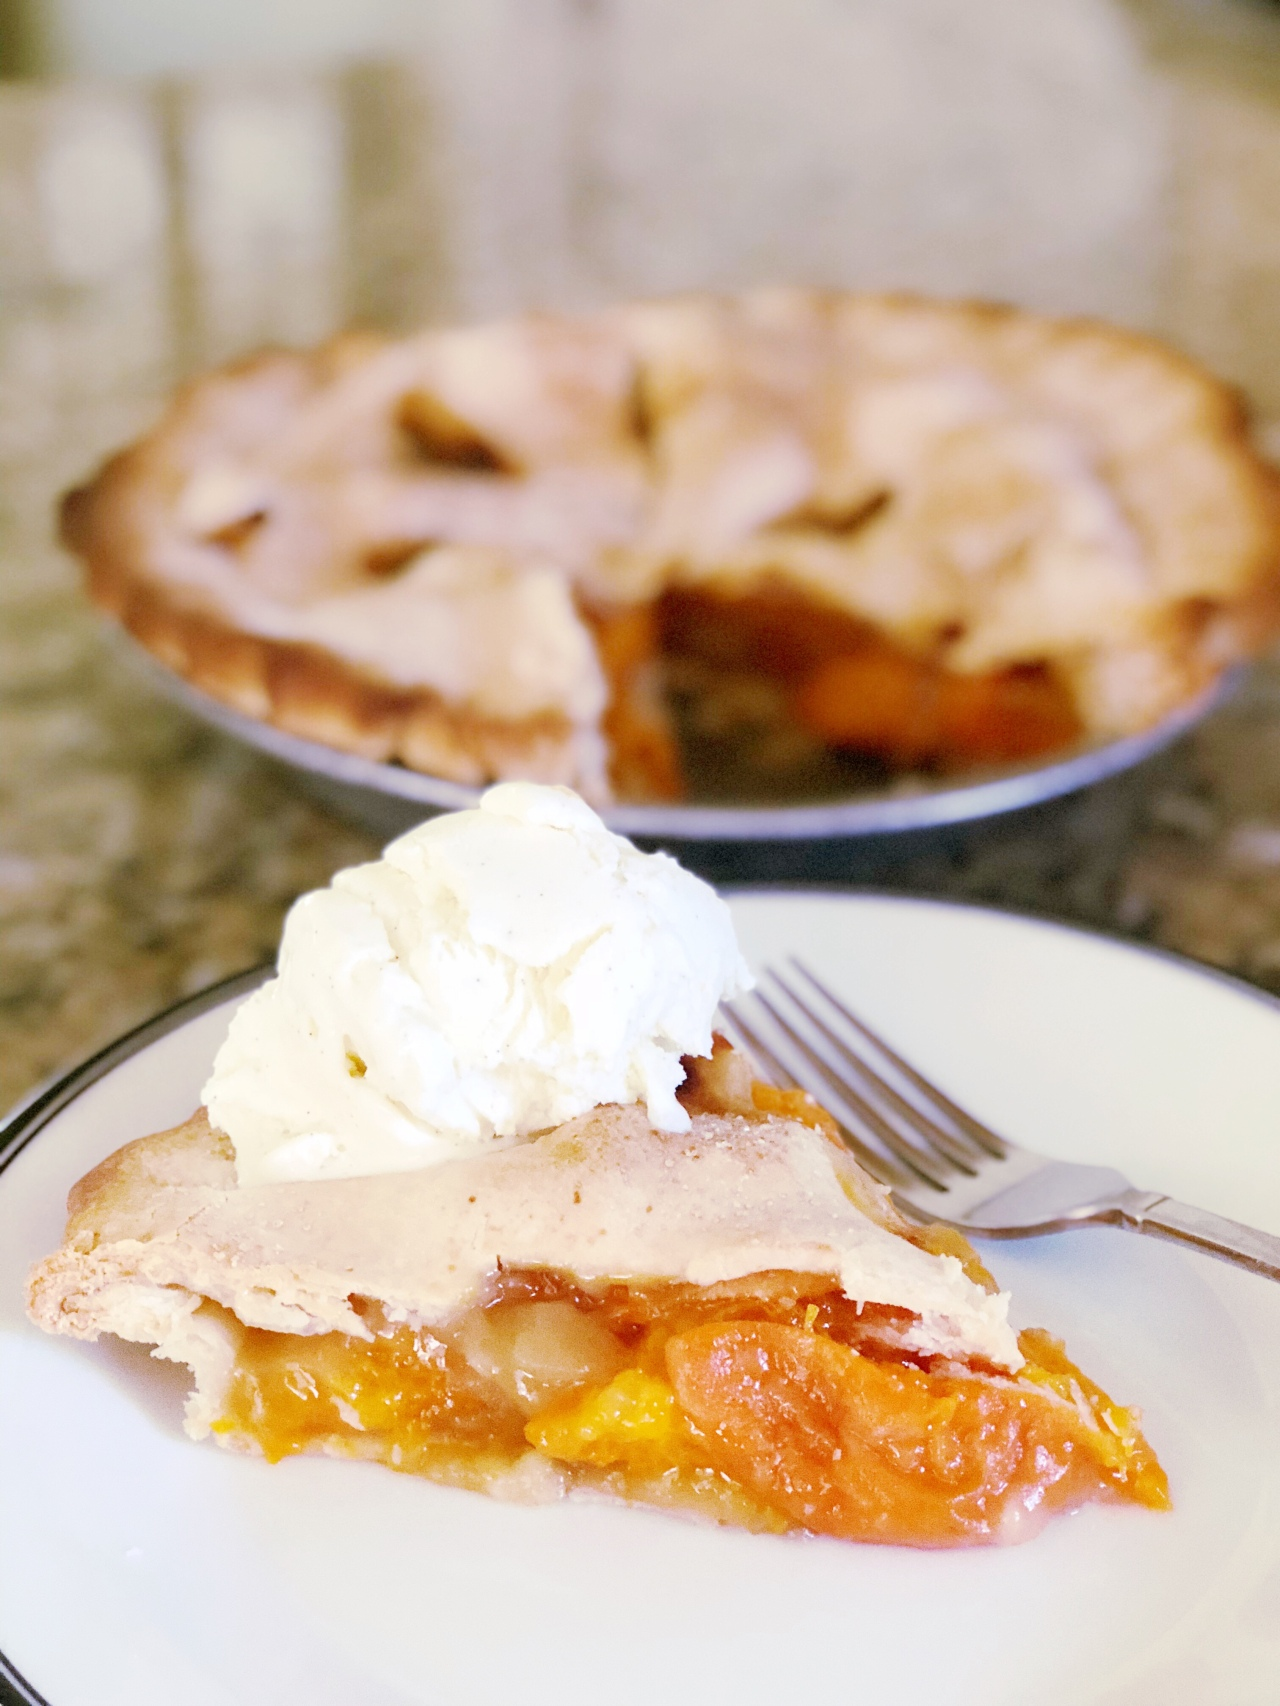 Heirloom recipe: Summer Apricot Pie